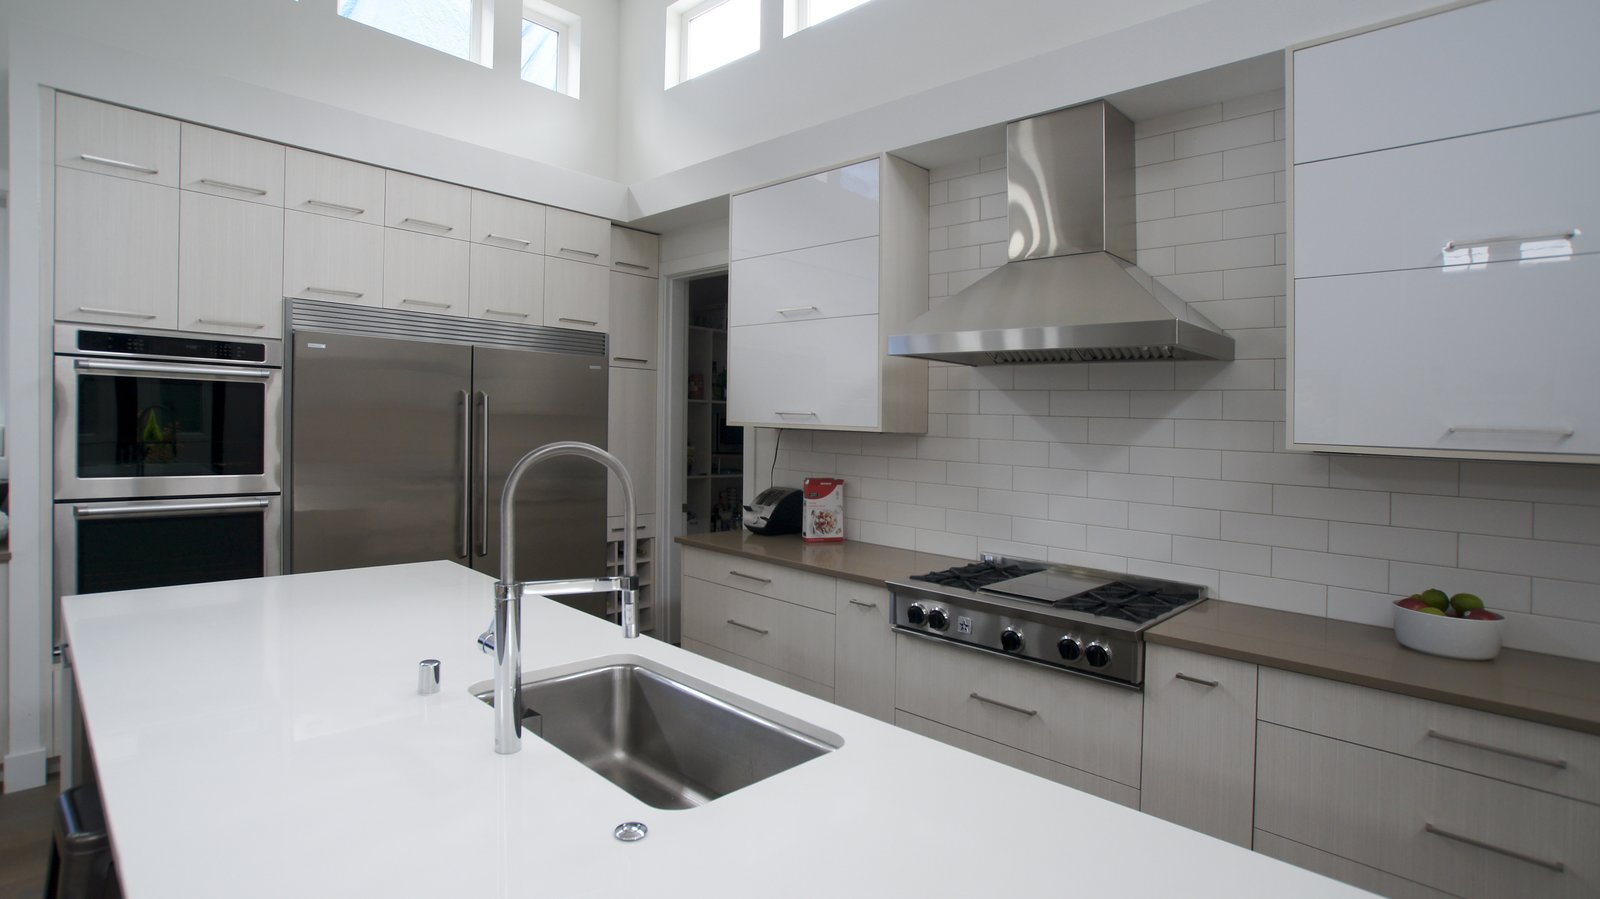 A neutral color palette is modernized with glossy finishes, a subway tile backsplash, and stainless appliance accents. This is a kitchen that will highlight and draw attention to the food, becoming a blank canvas for the owners to personalize.  Modern Courtyard Home by Atelier Drome